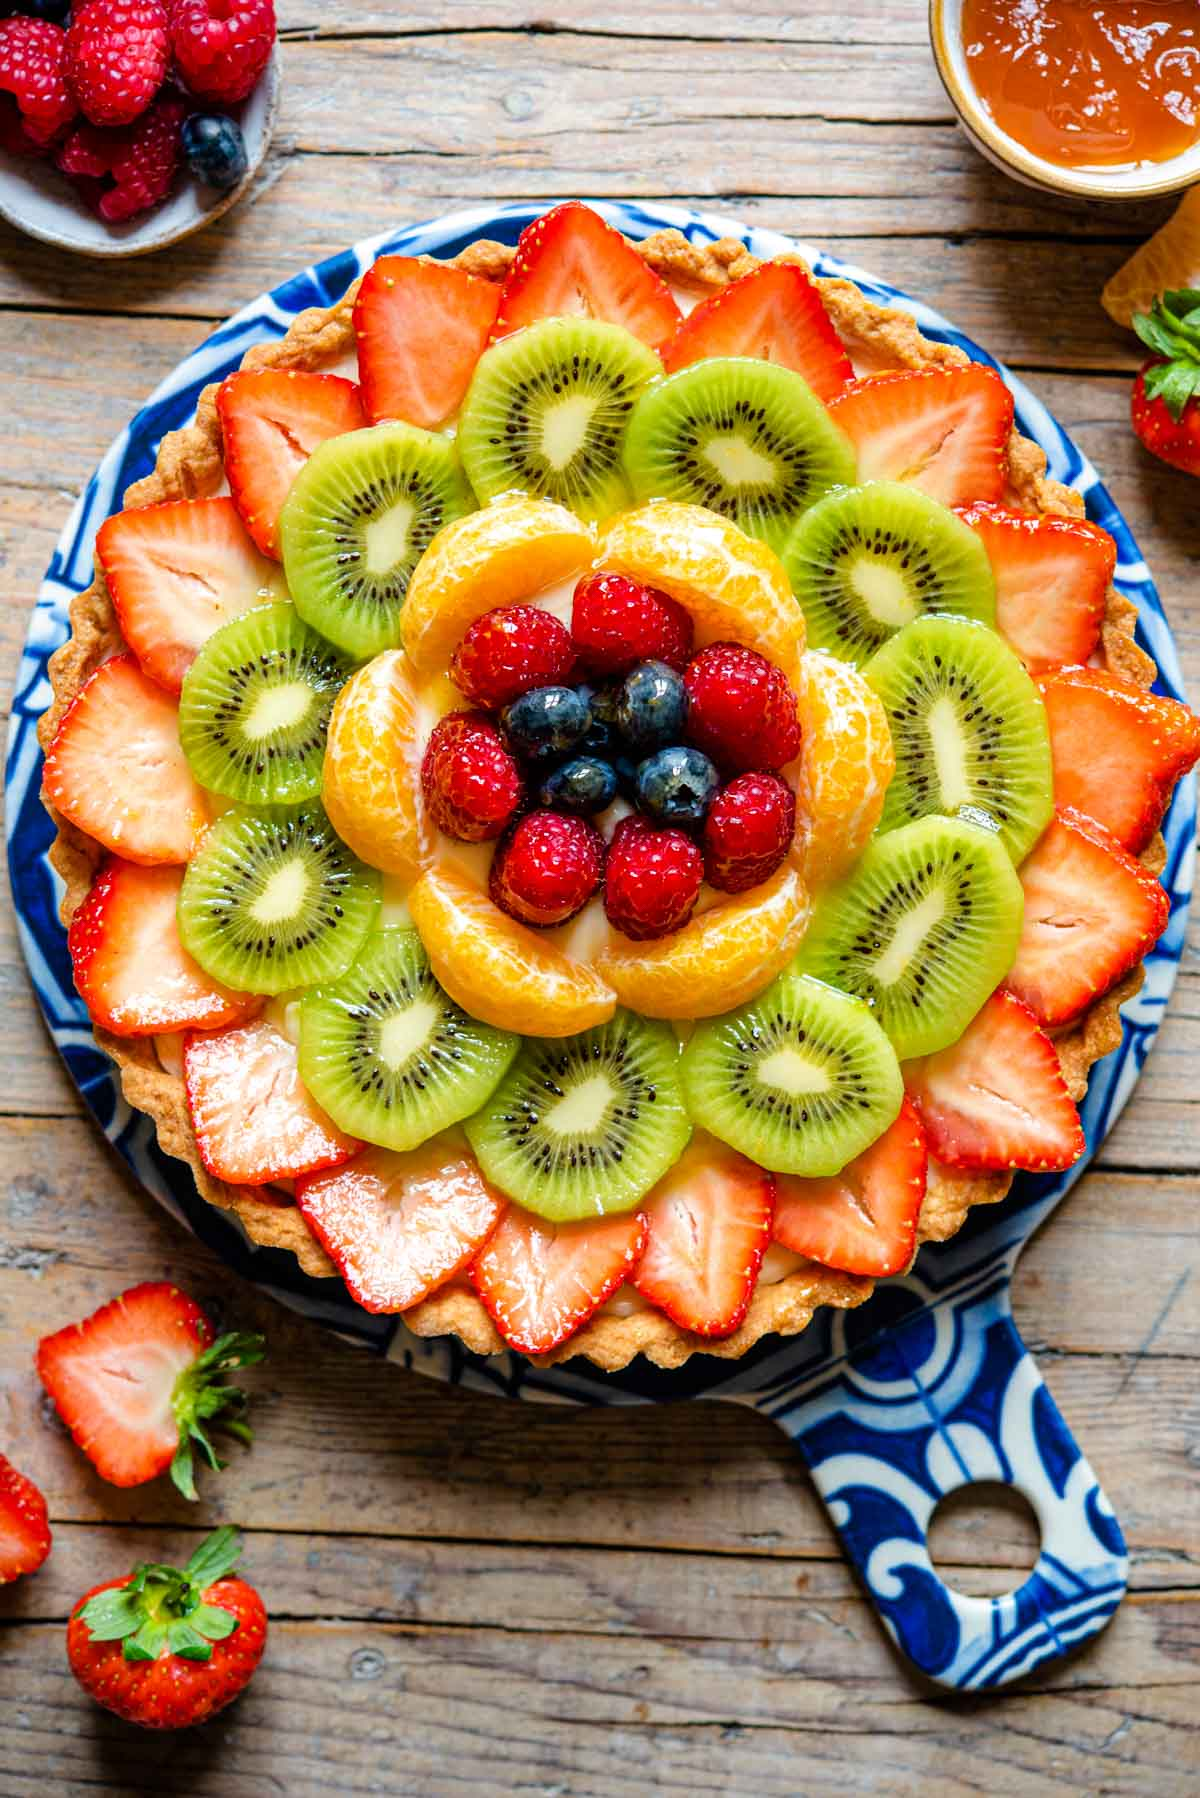 An overhead shot of an Italian fruit tart filled with pastry cream